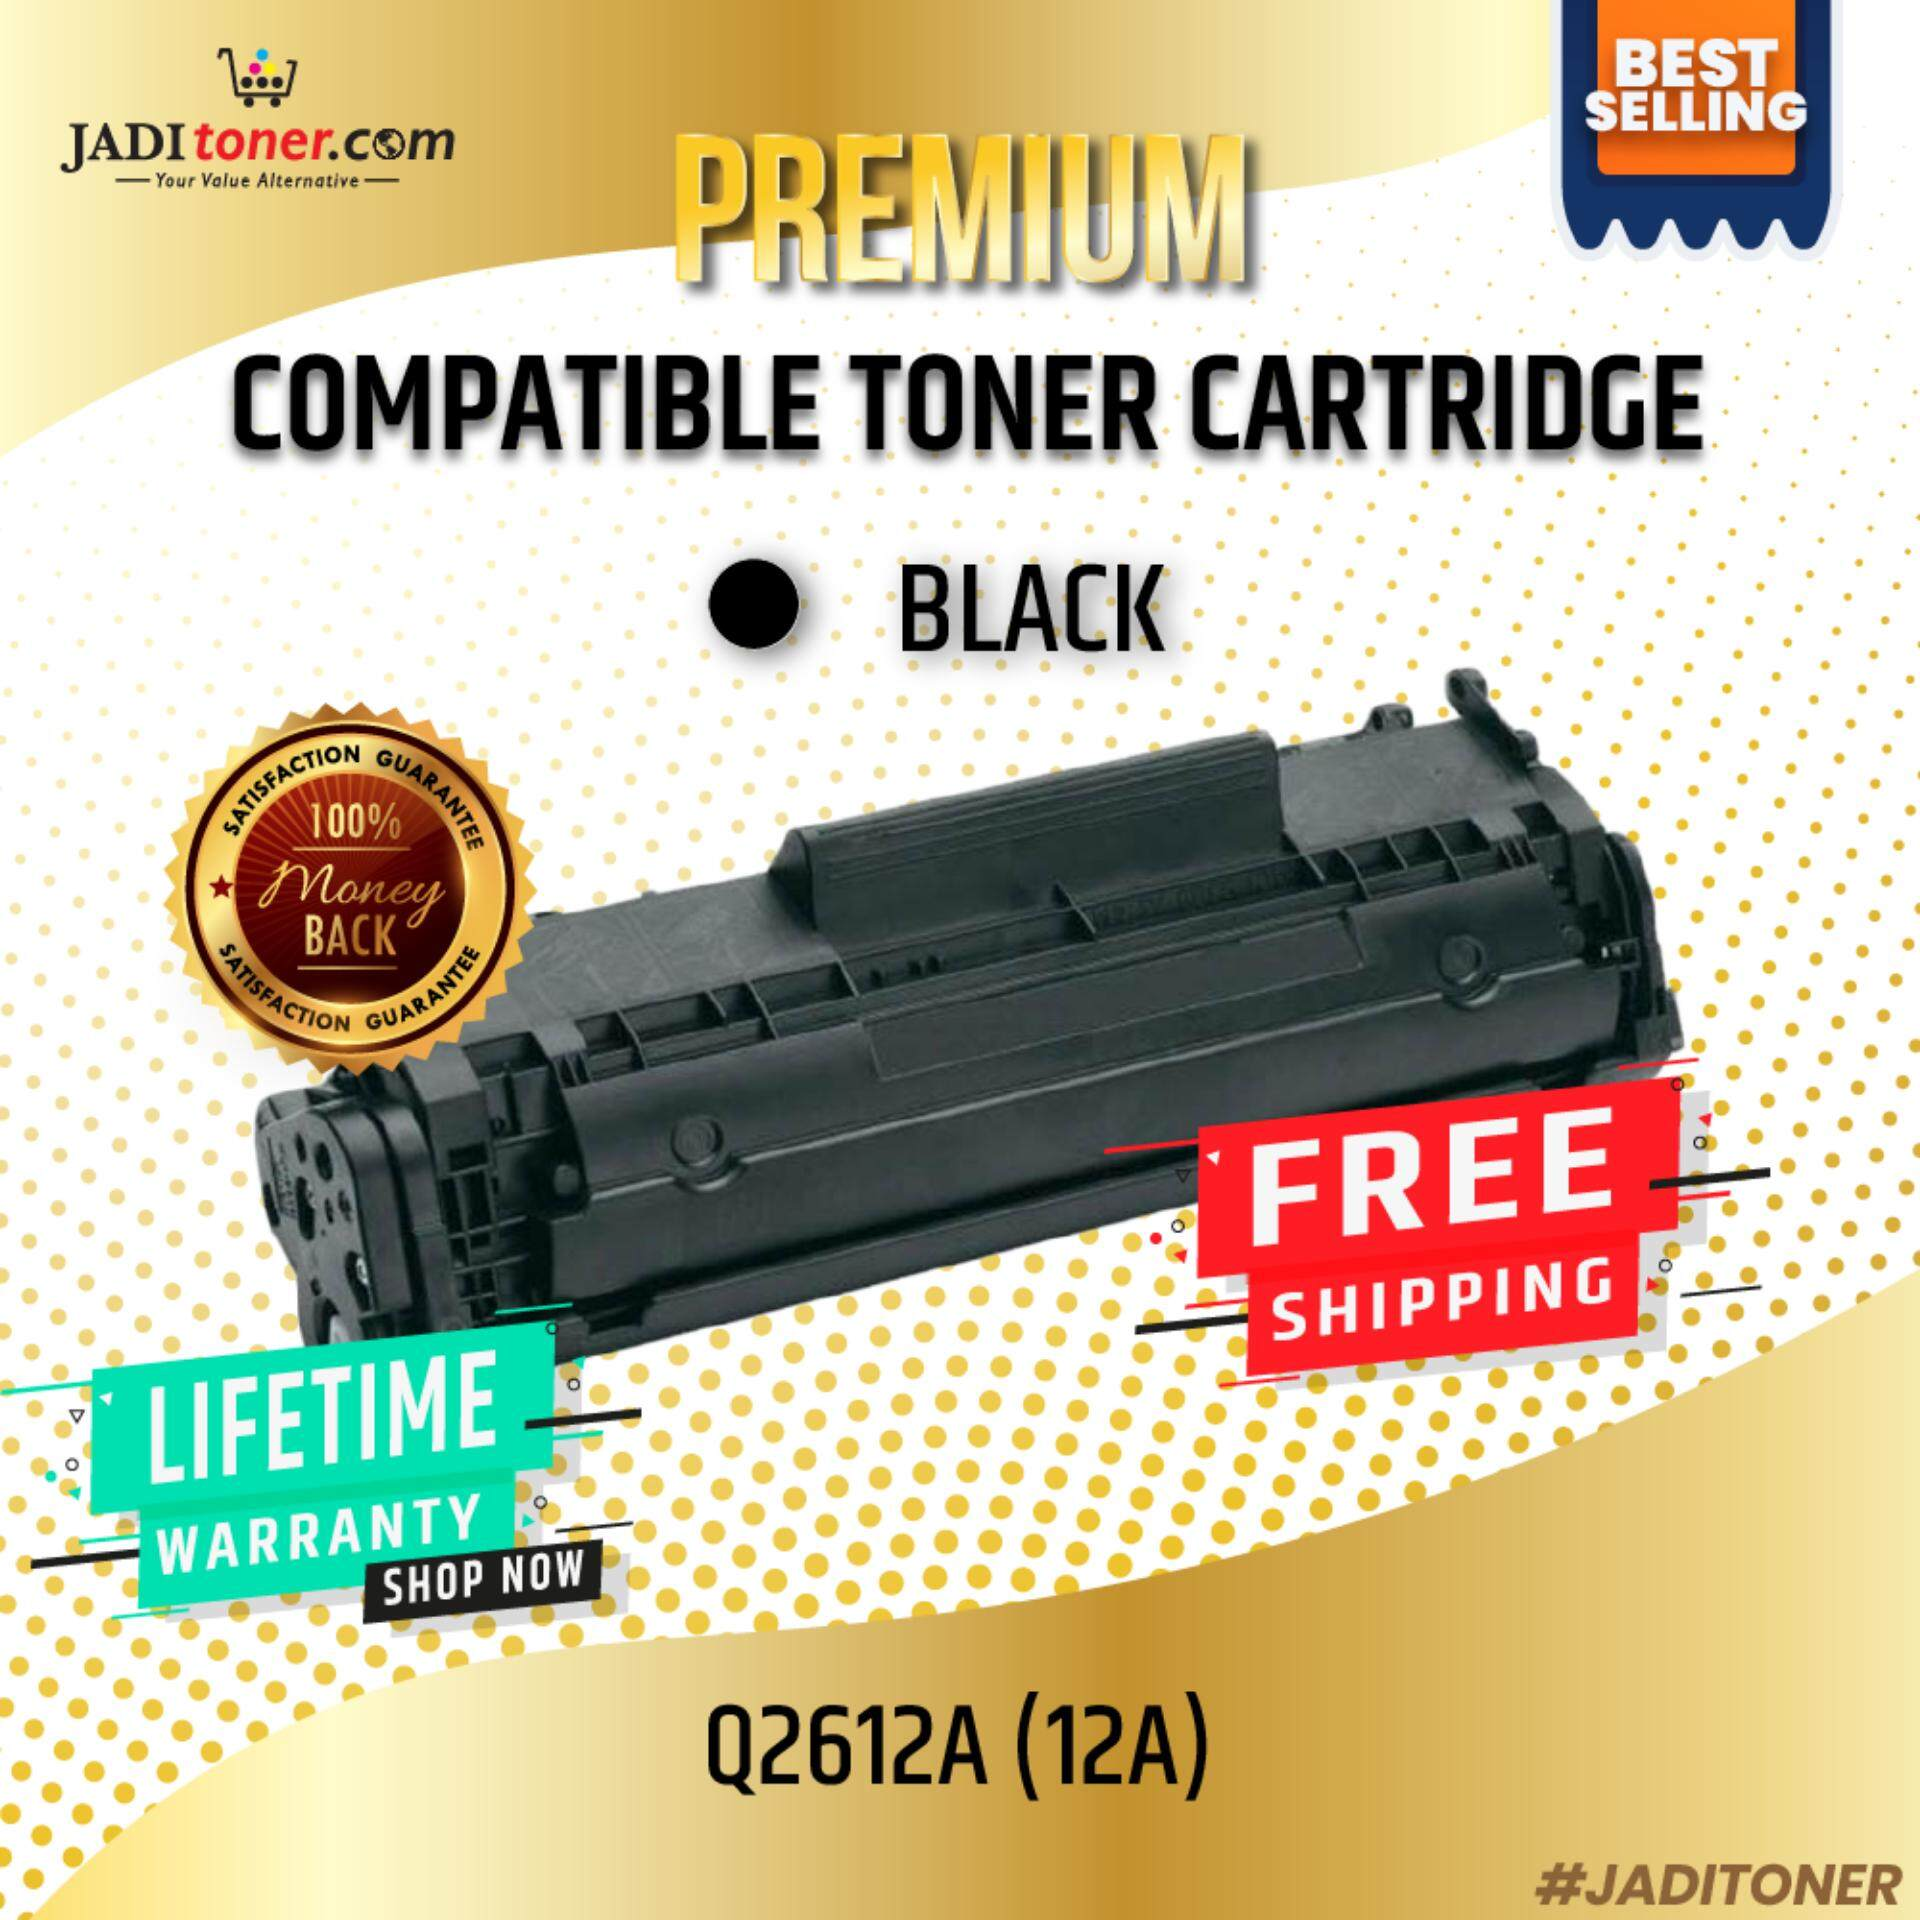 Compatible Q2612A 12A Laser Toner Cartridge For Use In HP Q2612 2612A HP LaserJet 1010 1012 1015 1018 1020 1022 3015 3020 3030 3050 3052 3055 M1005 M1005MFP M1319 M1319MFP / Canon LASER SHOT LBP2900/ Canon LASER SHOT LBP 3000